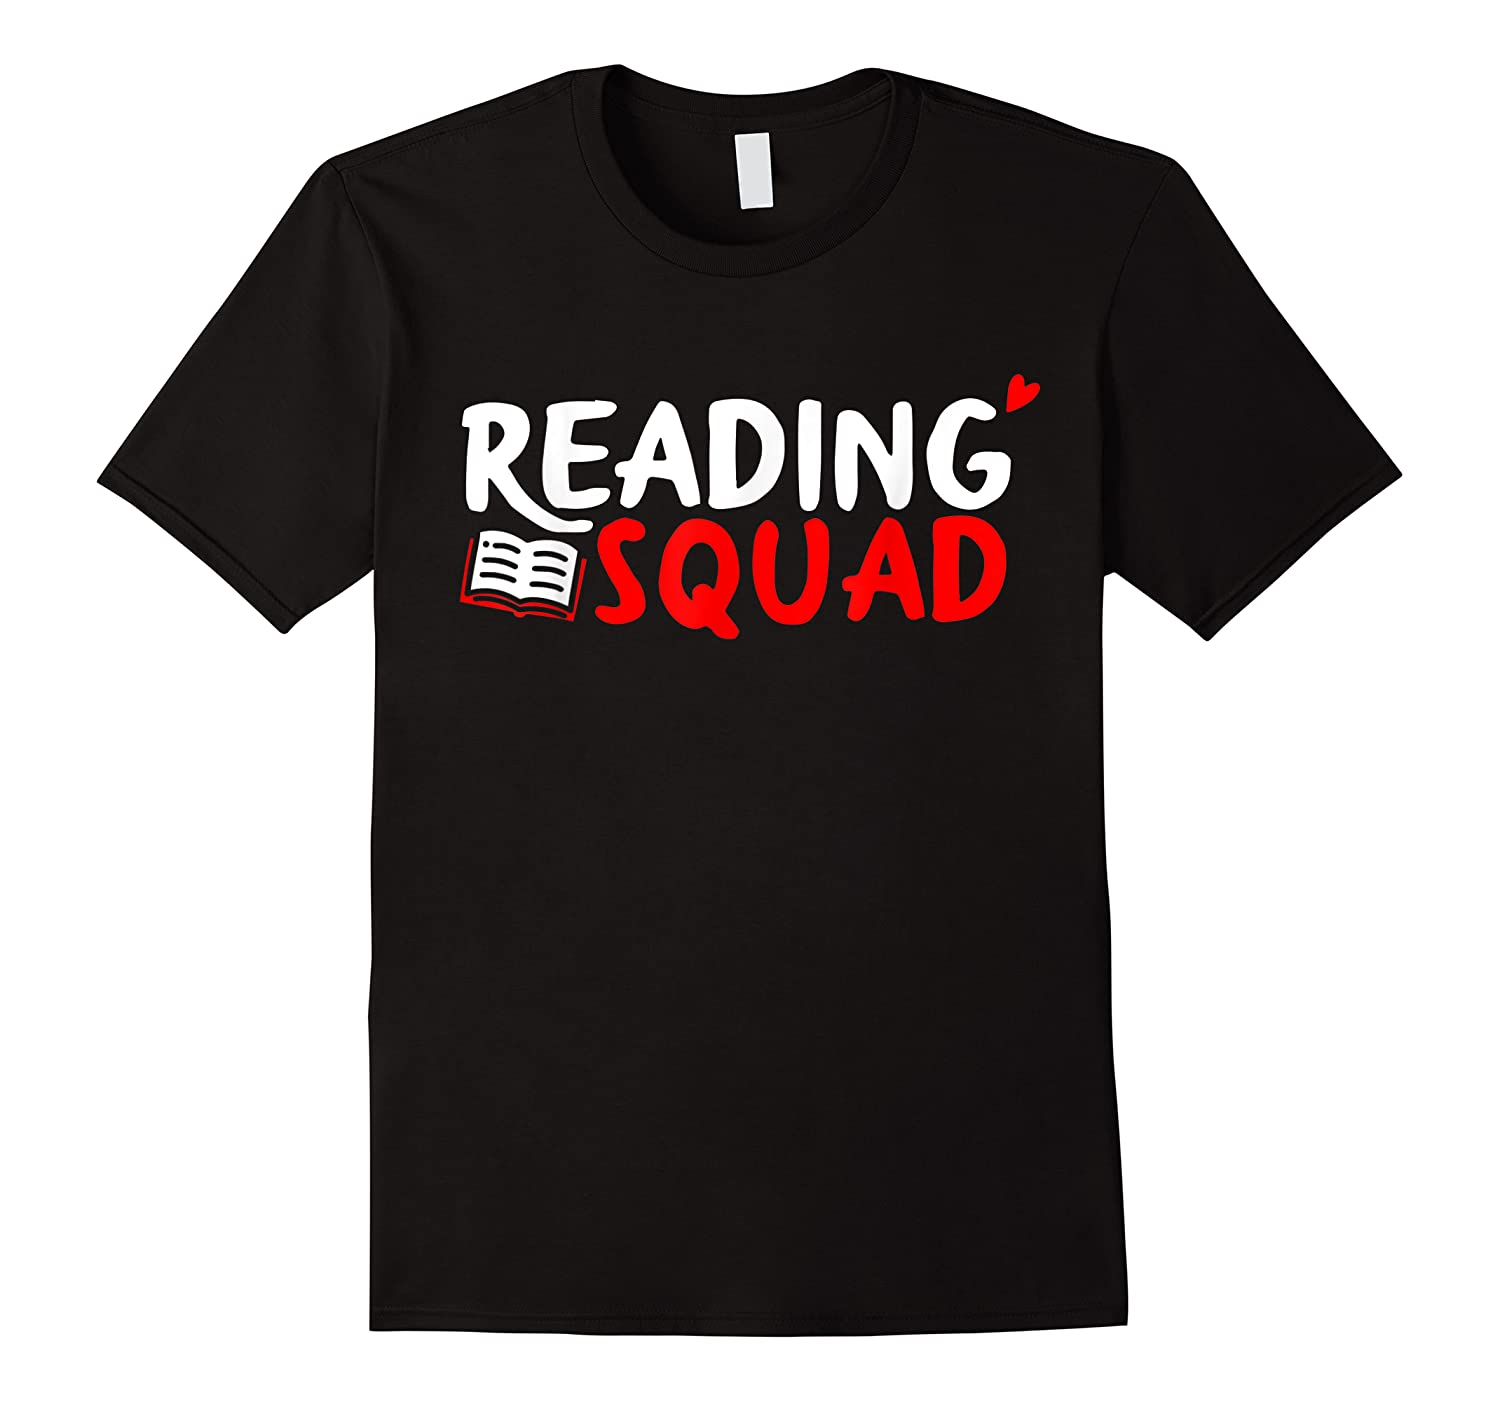 Book Reading Bookworm Librarian Library T-shirt